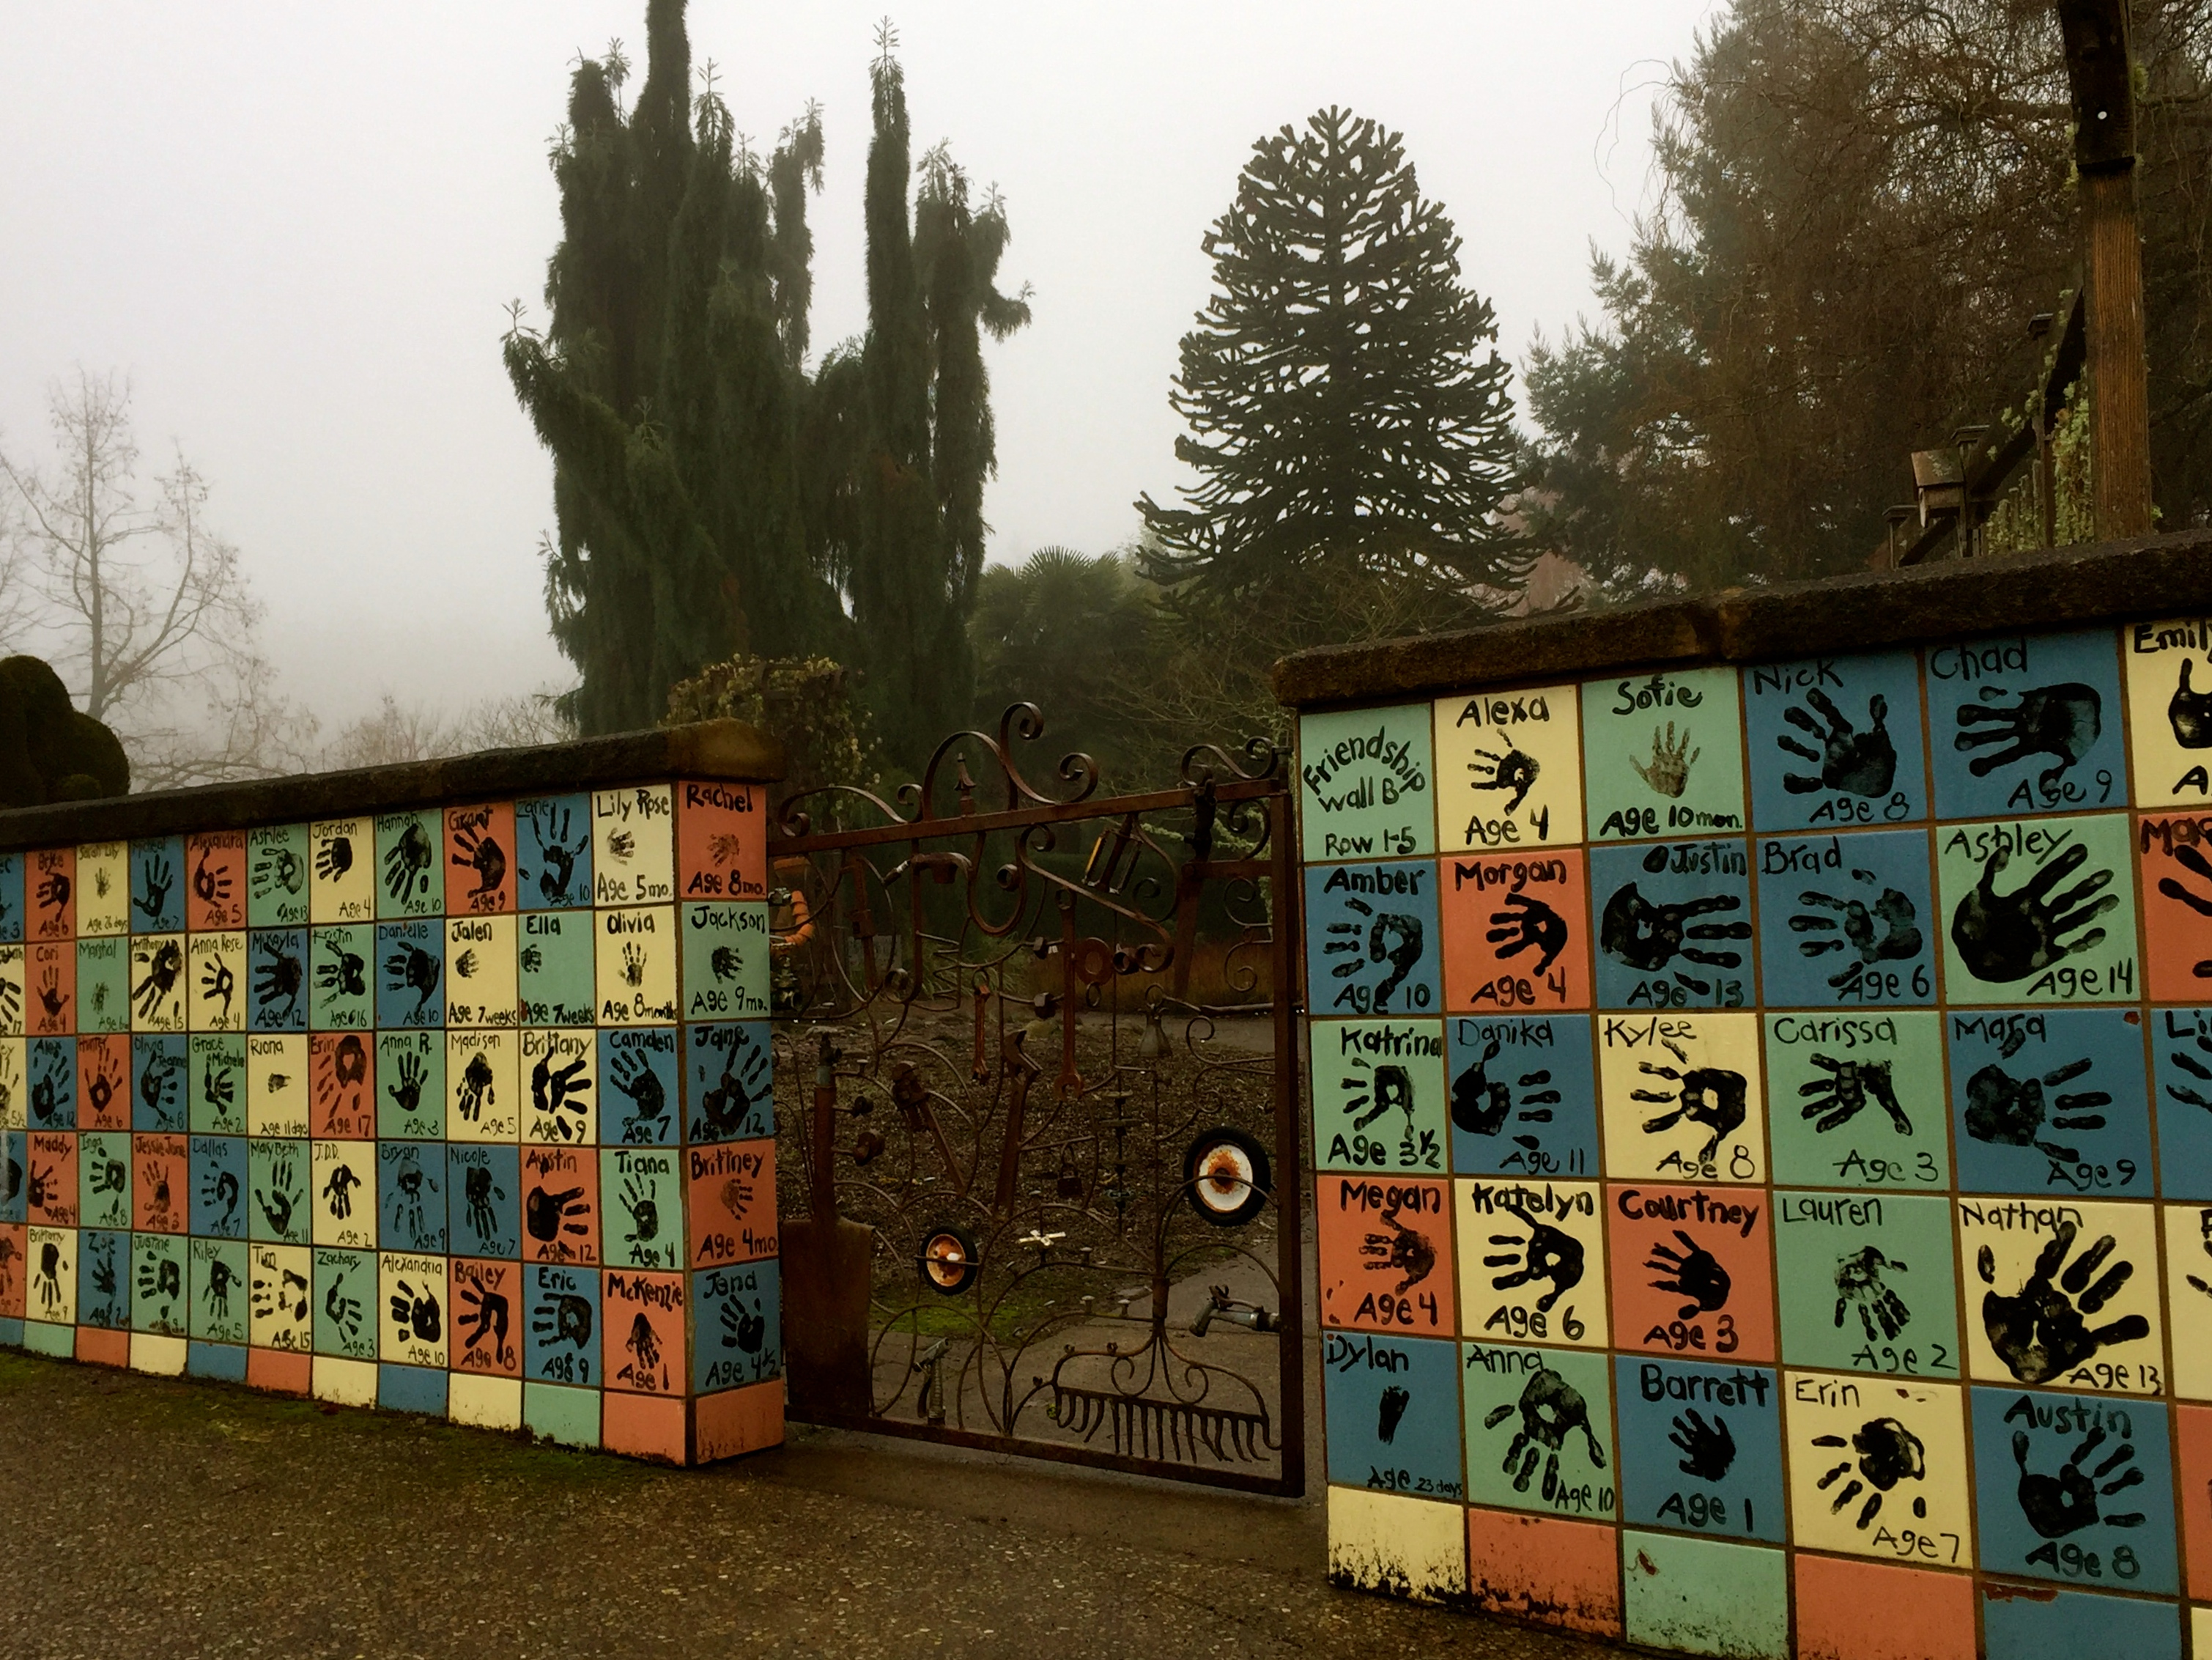 Winter Magic at The Oregon Garden, Part 4 | in cahoots with muddy boots